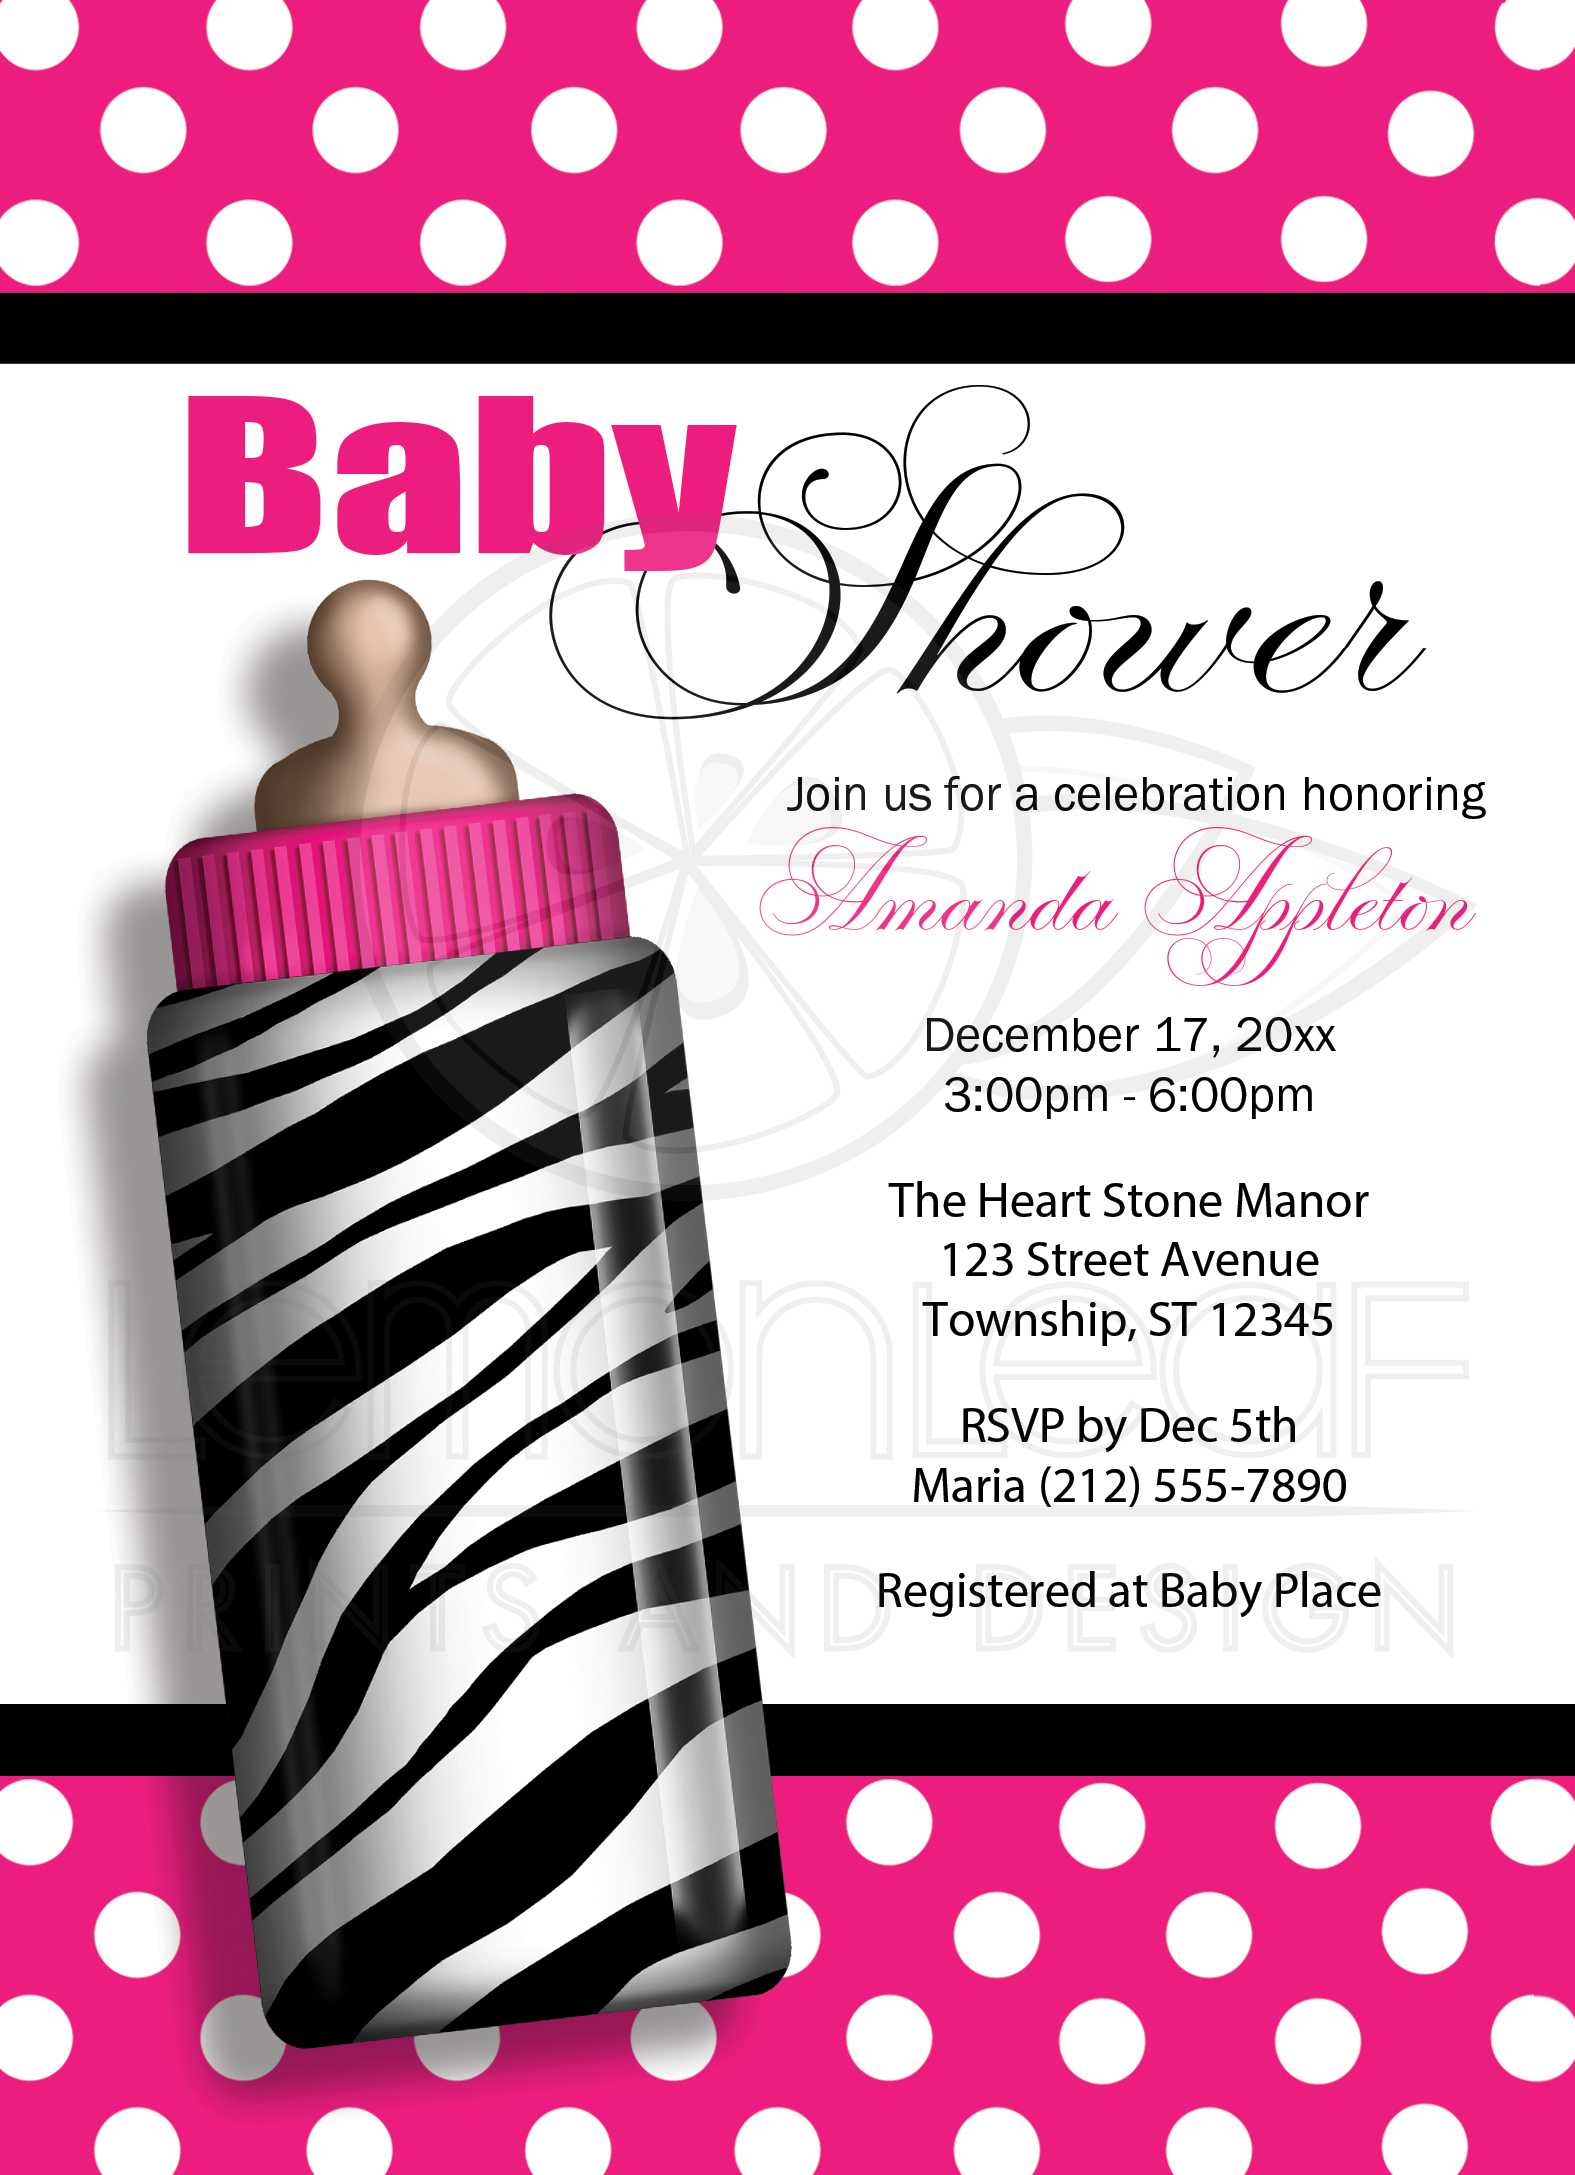 Baby Shower Invitations - Zebra Print Baby Bottle Hot Pink